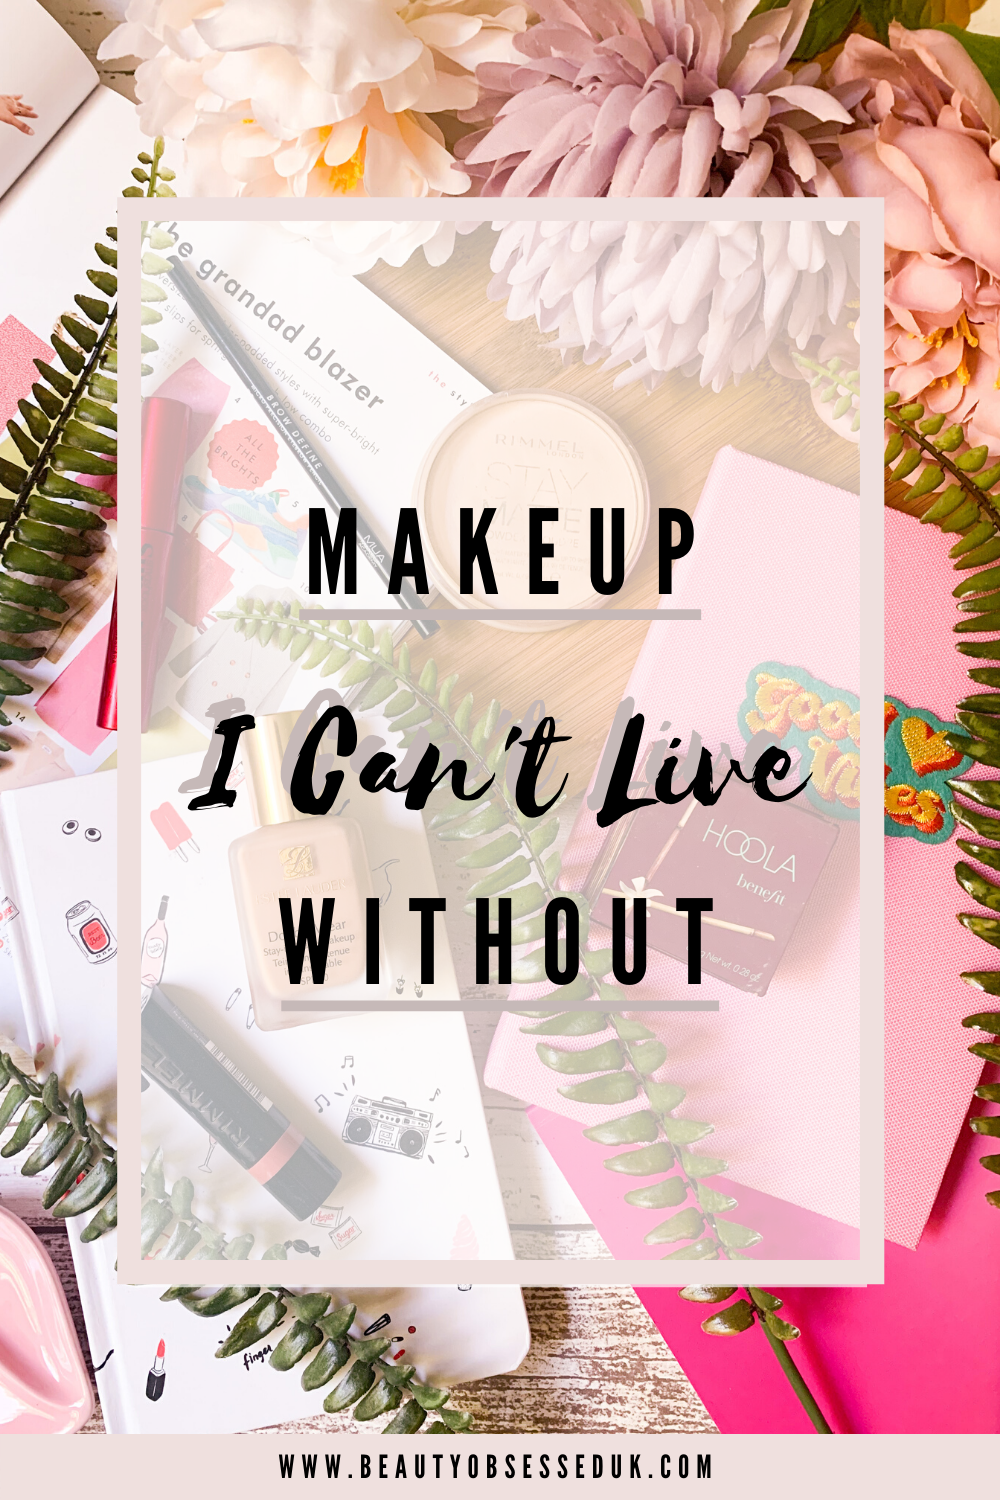 Makeup I Can't Live Without Pinterest